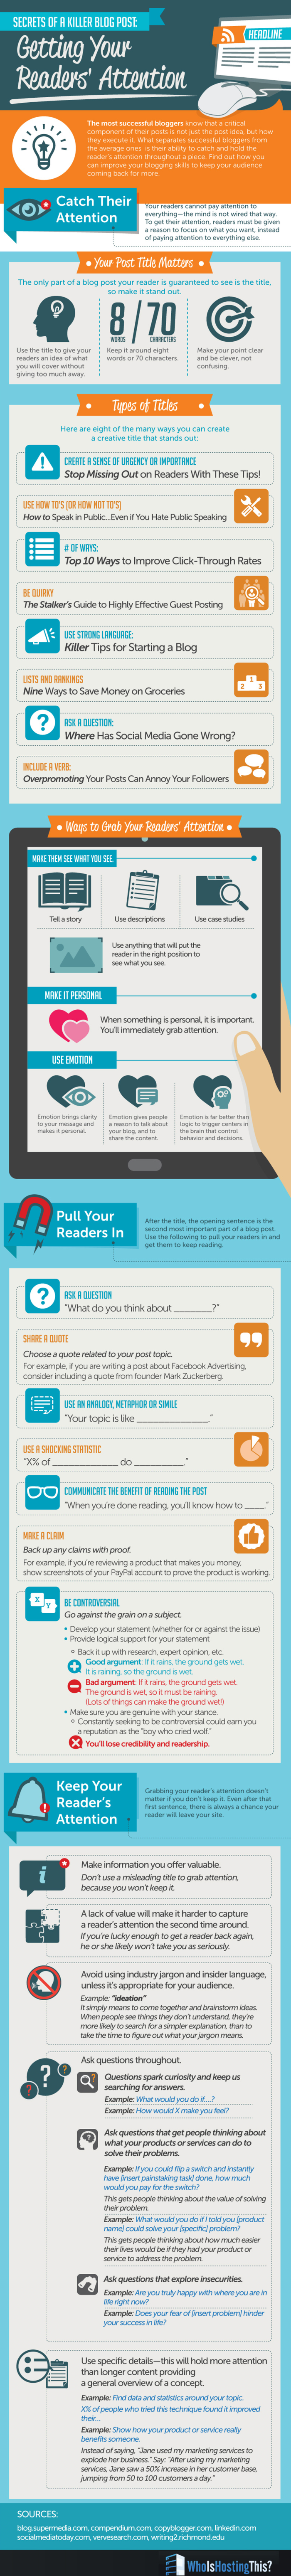 Infographic - Getting your readers attention (Secrets of a killer blog post)